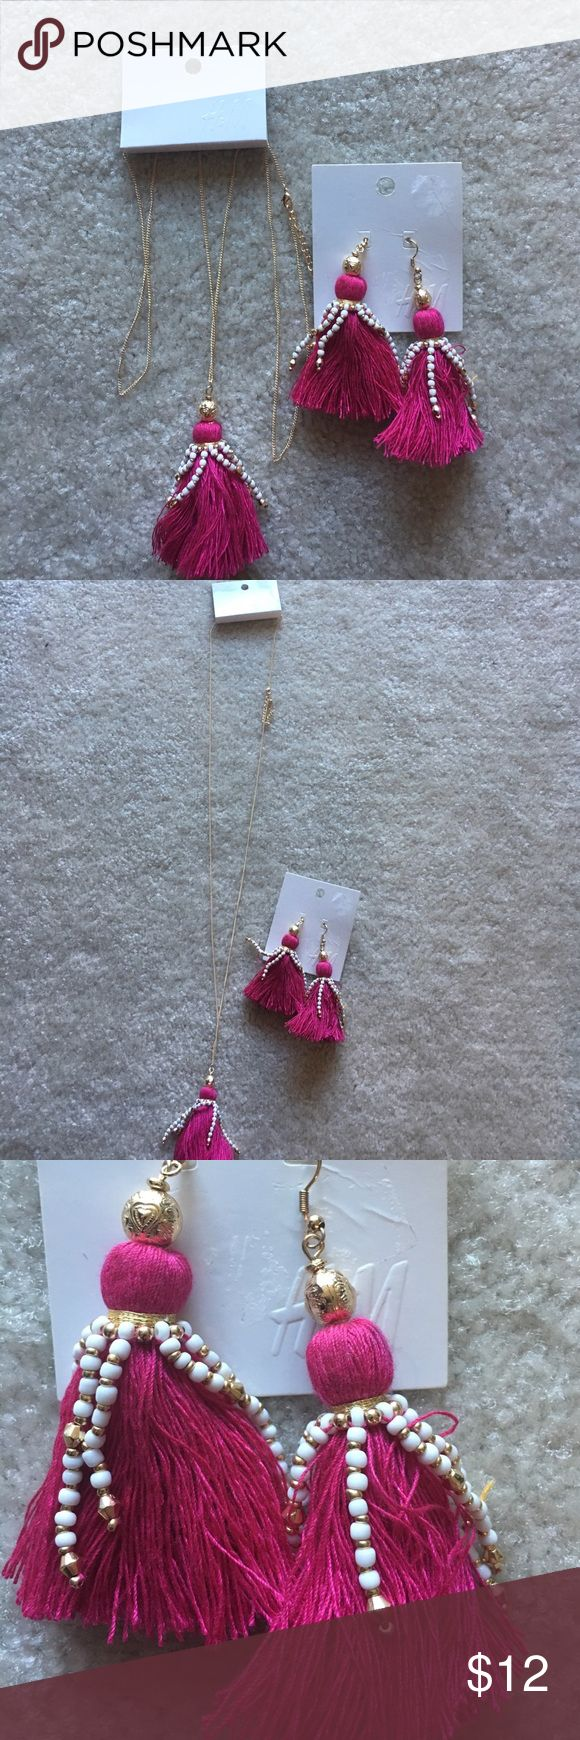 New pink fuchsia H&M earrings and necklace set Brand new with tags H&M necklace and earring set H&M Jewelry Necklaces